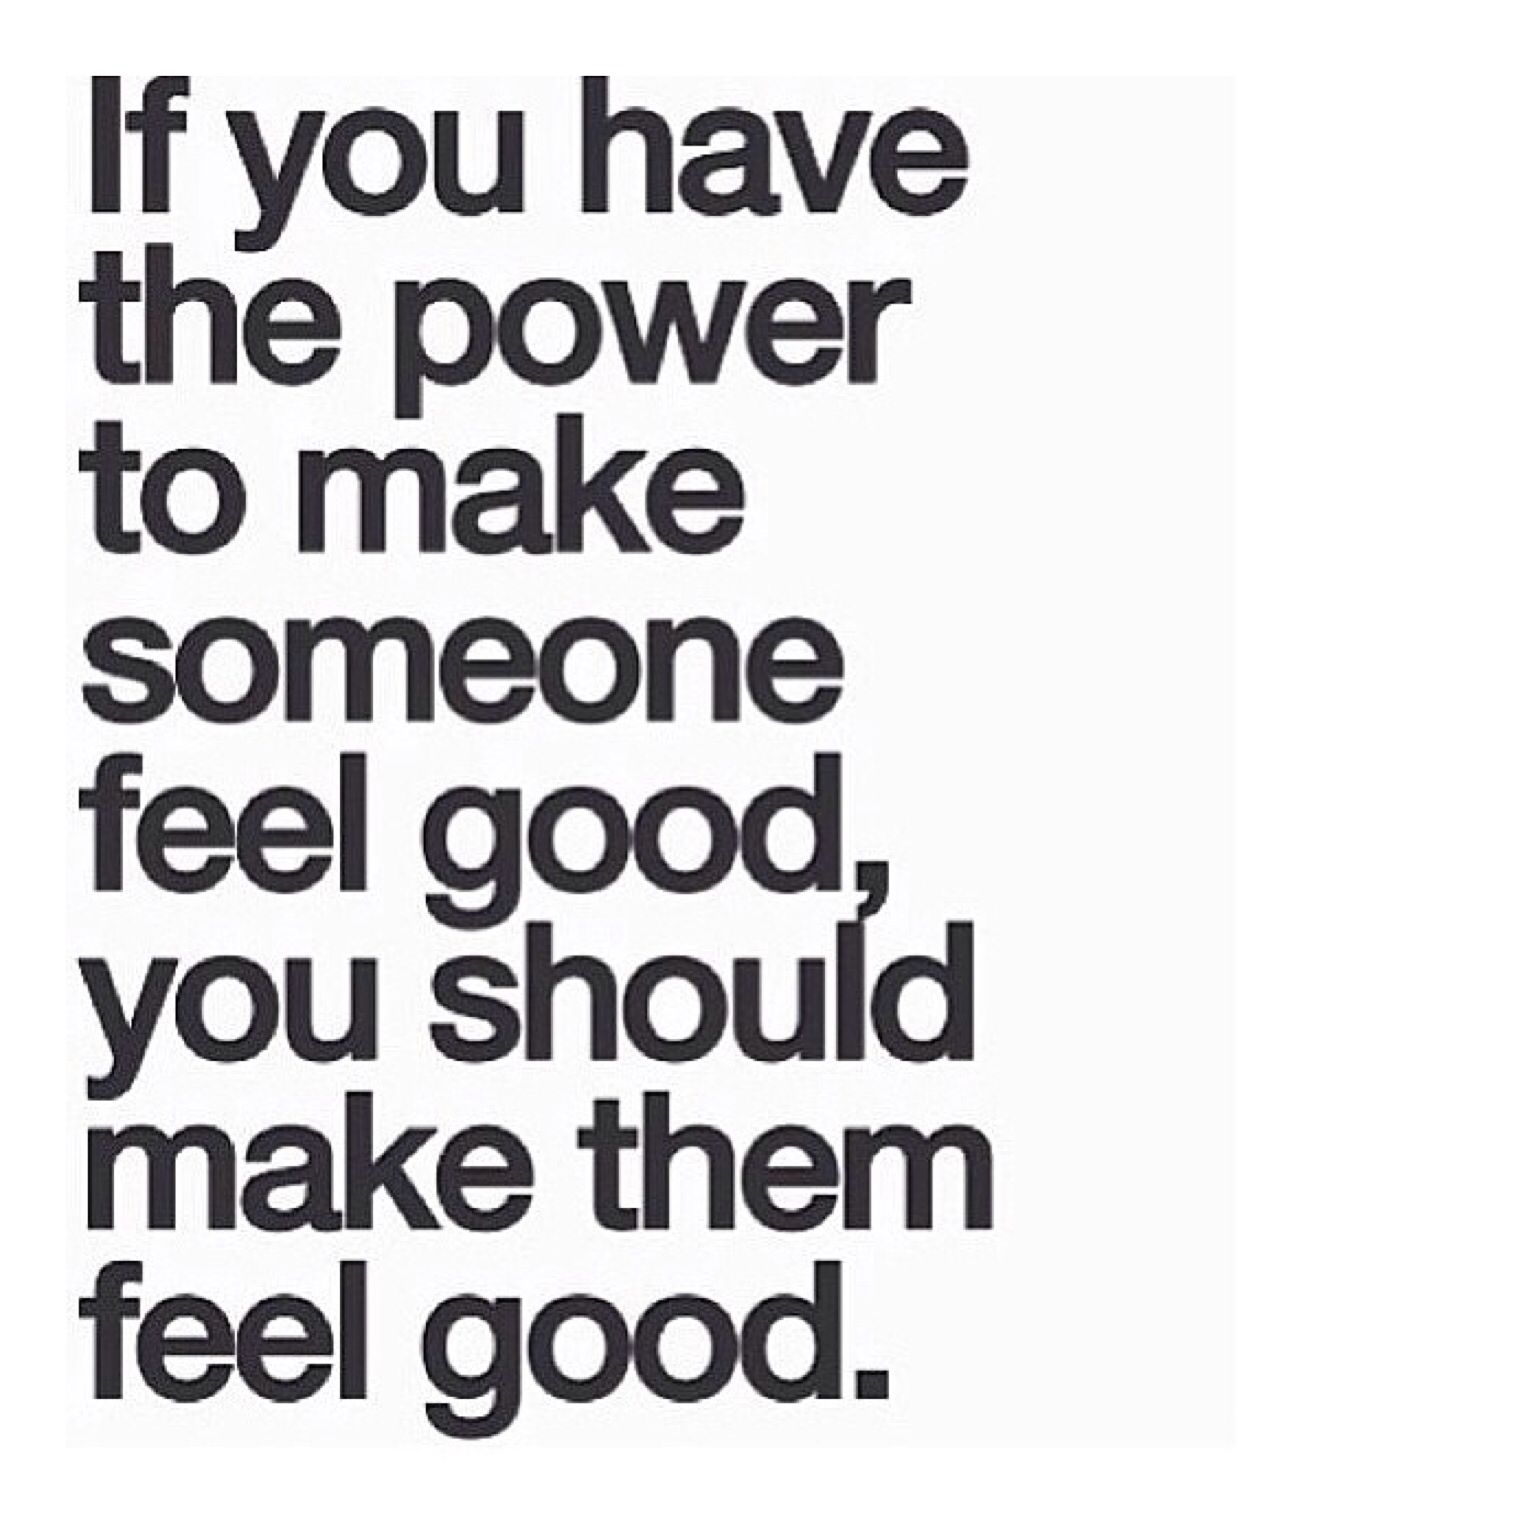 If You Have The Power To Make Someone Feel Good Then You Should Make